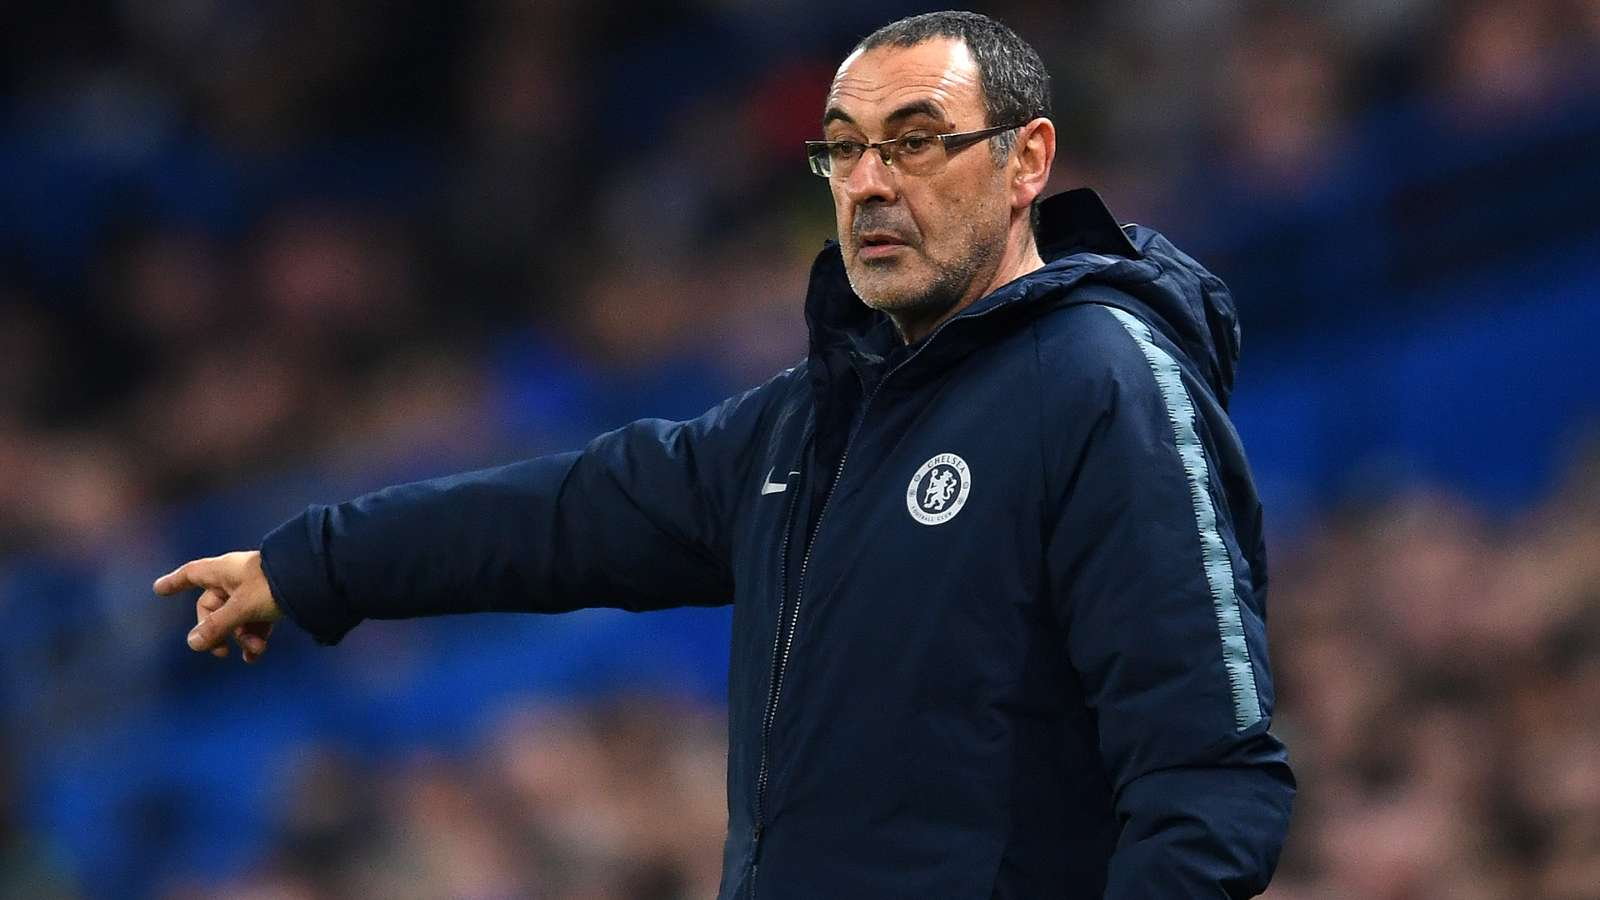 Sarri talk On whether he deserves more time - Bóng Đá